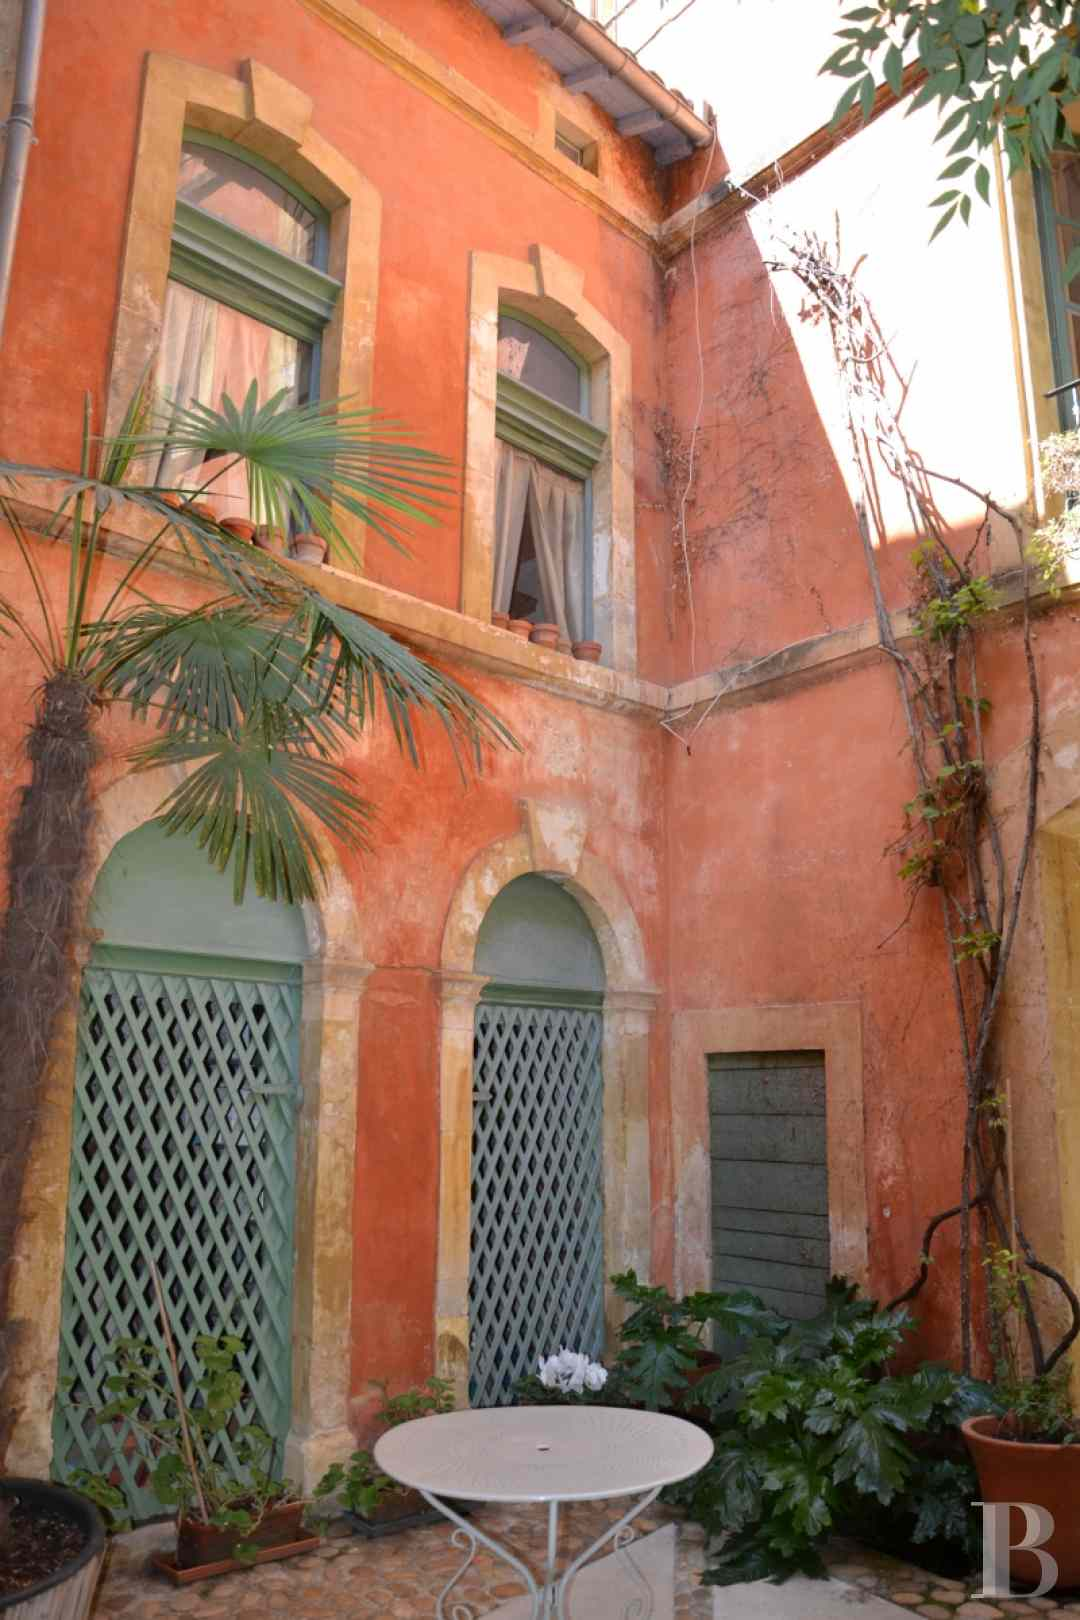 property for sale France languedoc roussillon residences mansion - 3 zoom